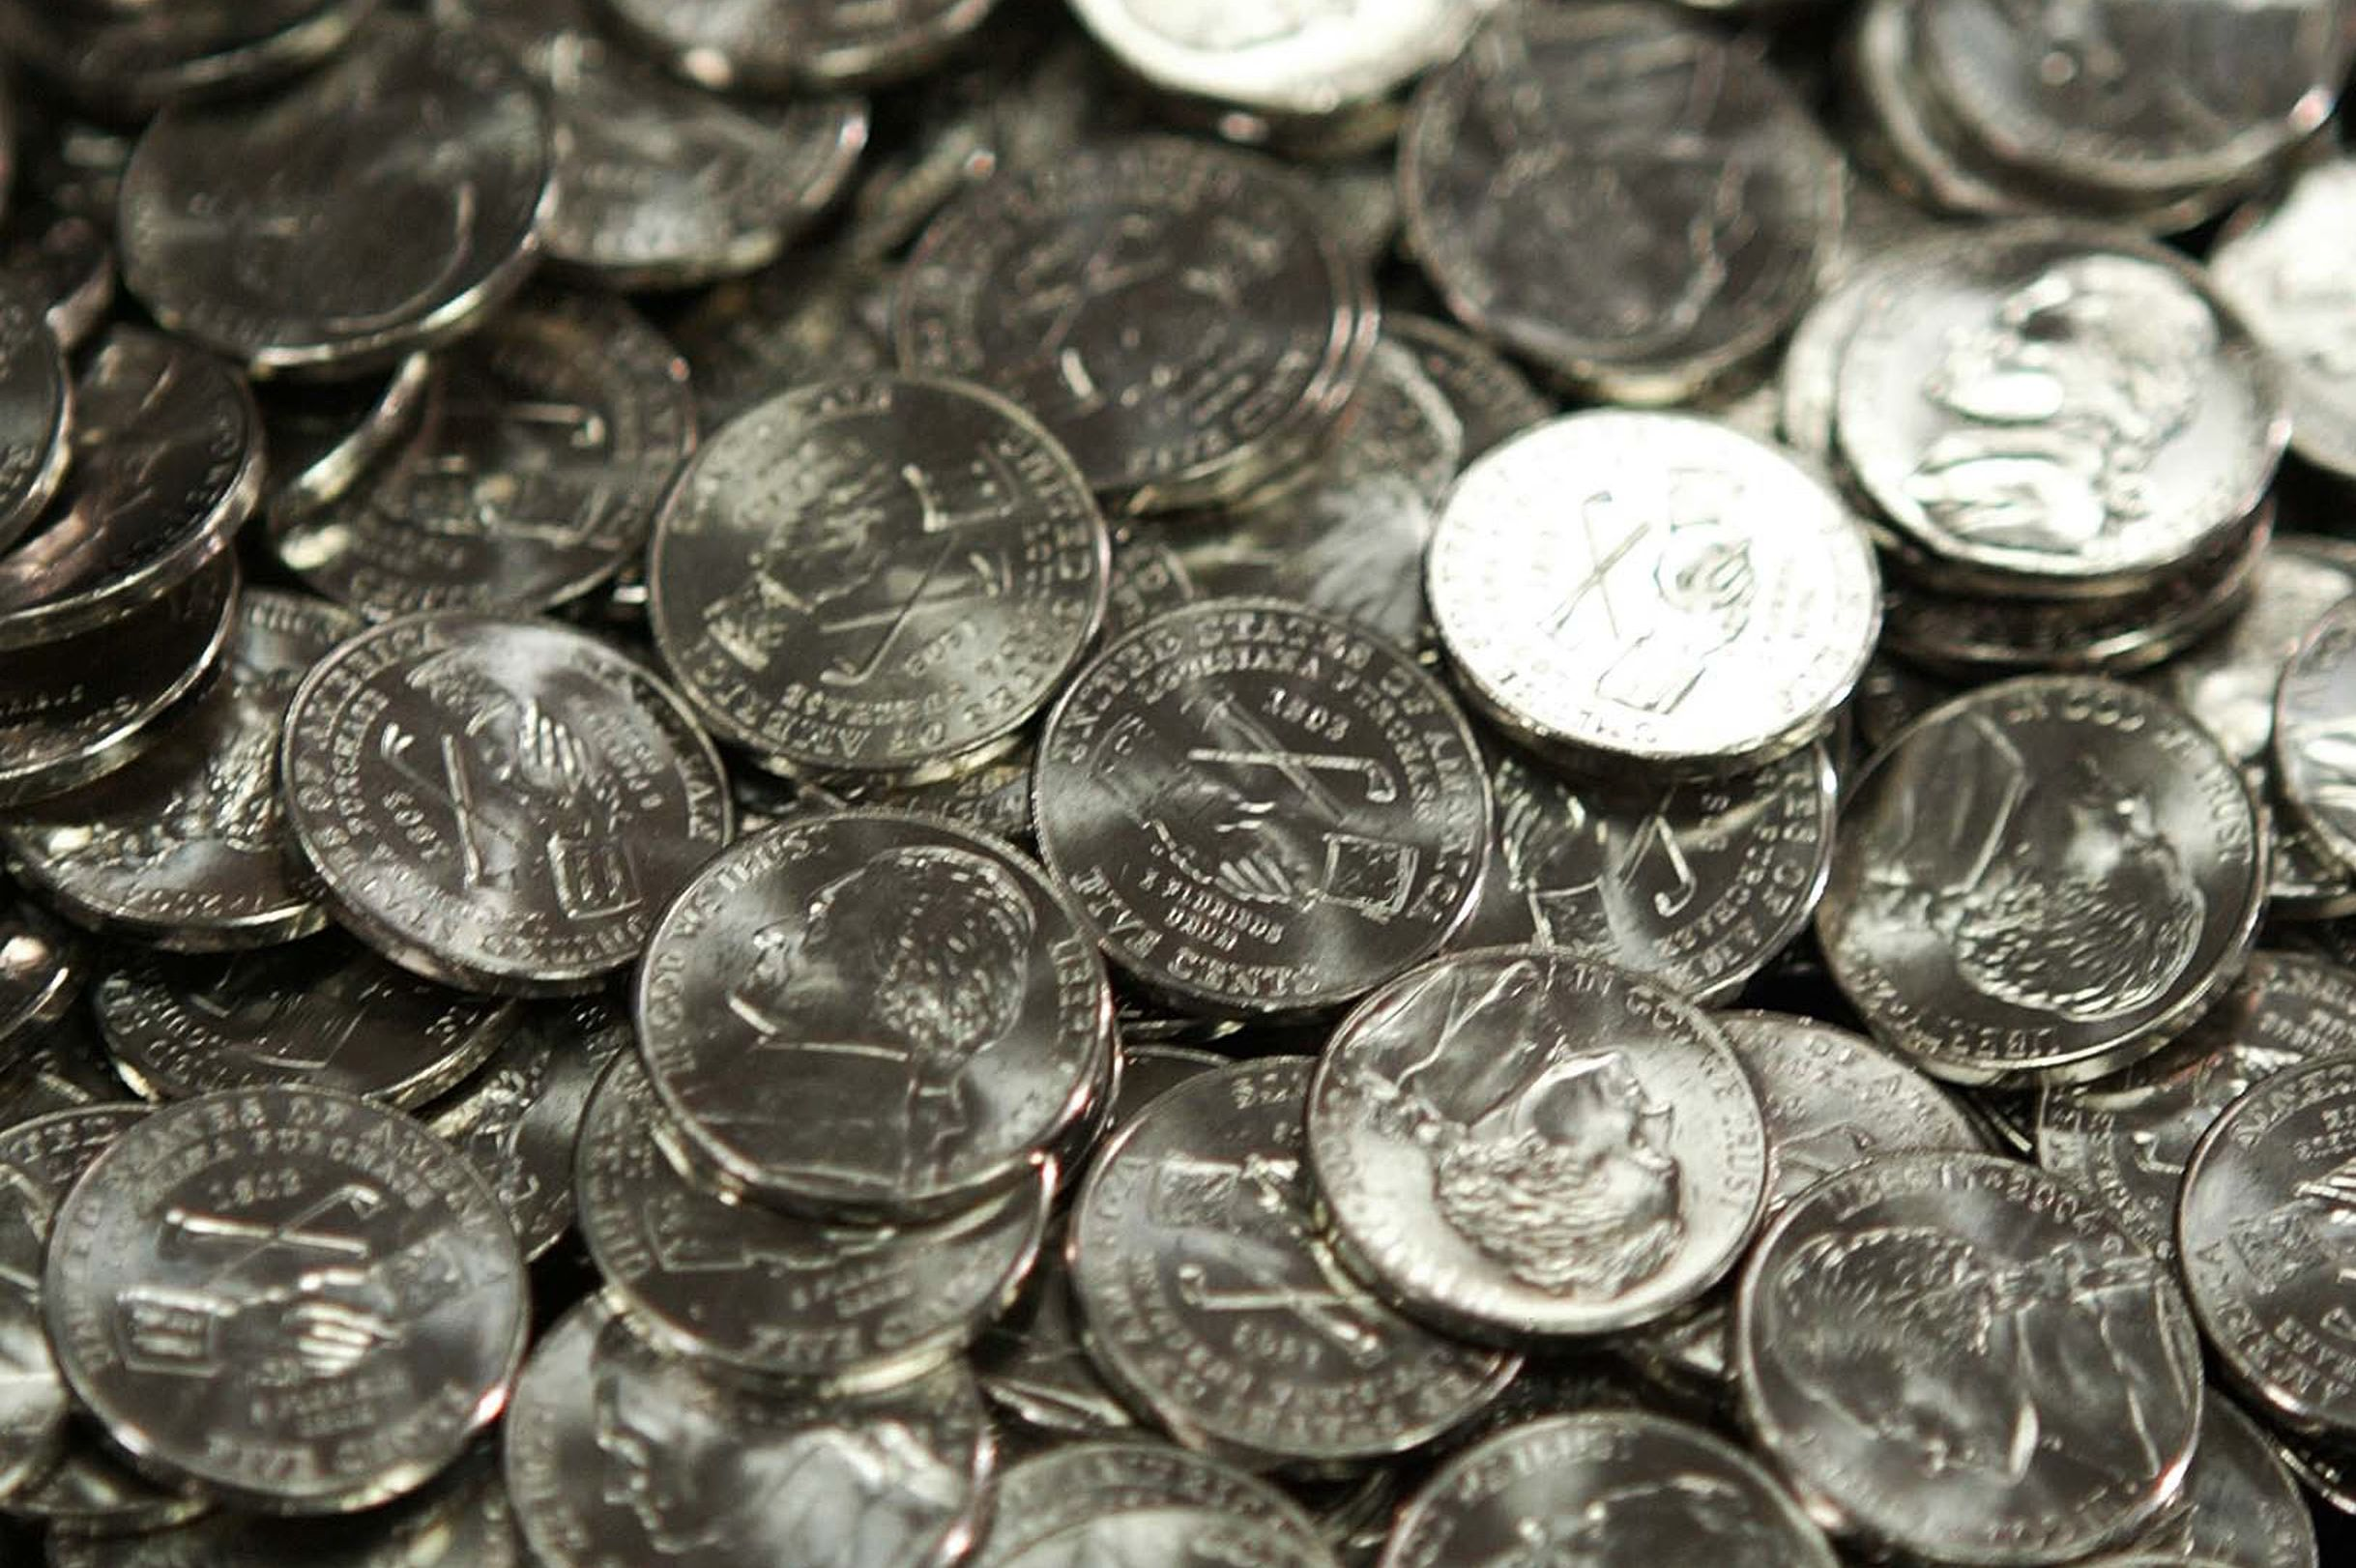 15 Valuable Coins That May Be In Your Coin Jar | Mental Floss